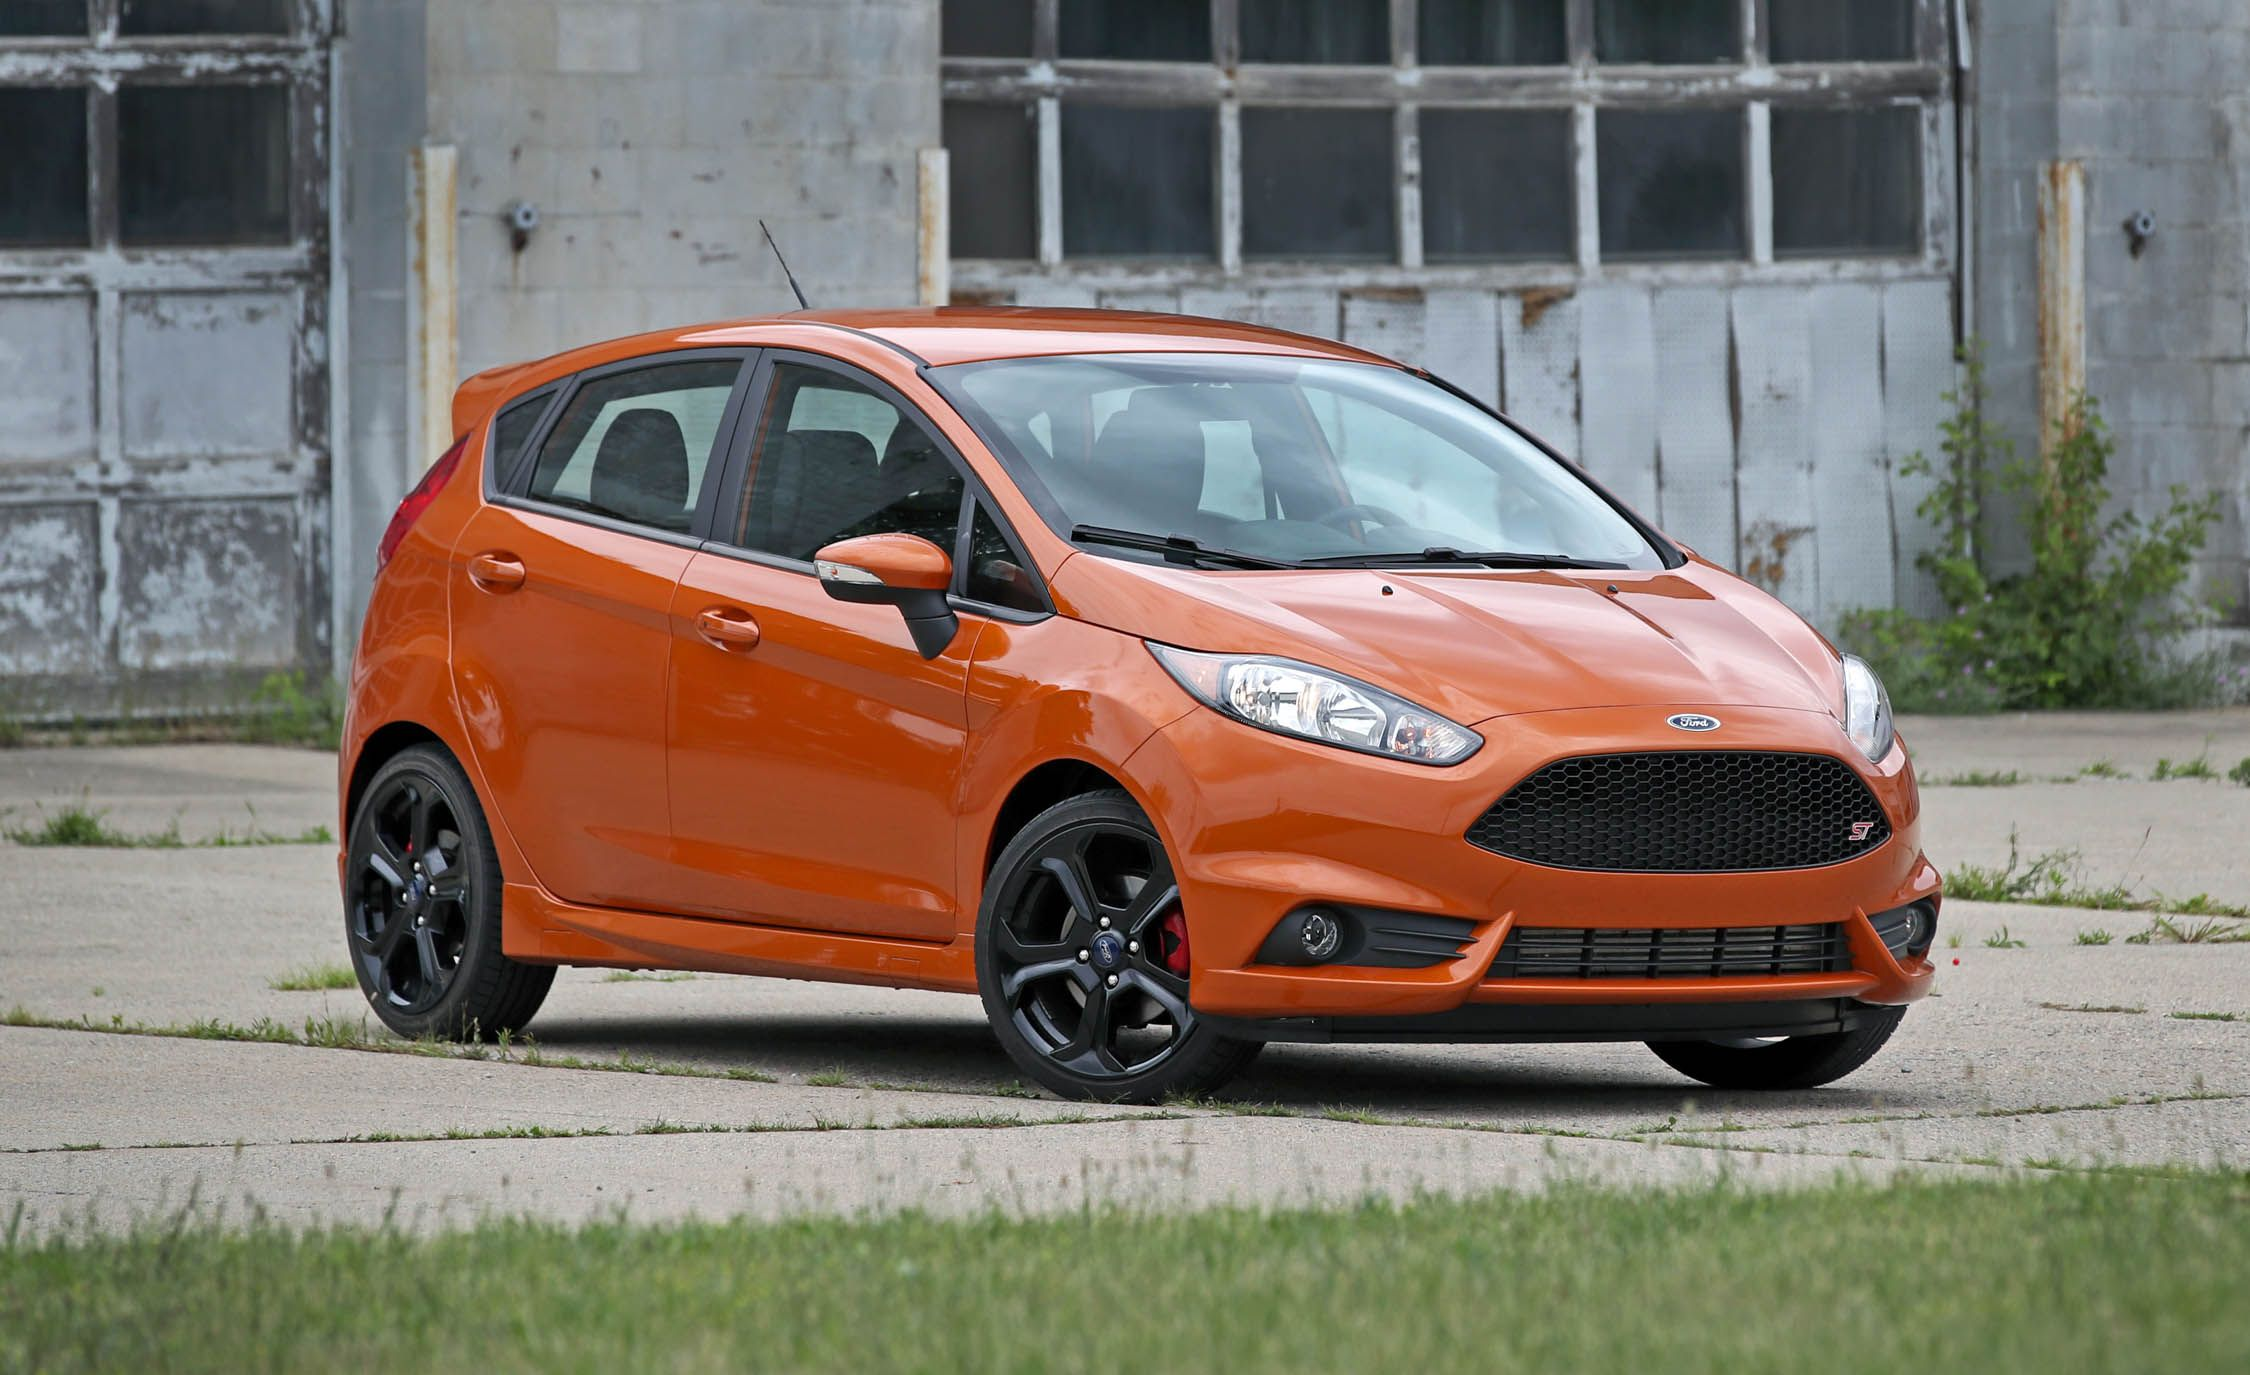 2018 ford fiesta st exterior design and dimensions. Black Bedroom Furniture Sets. Home Design Ideas